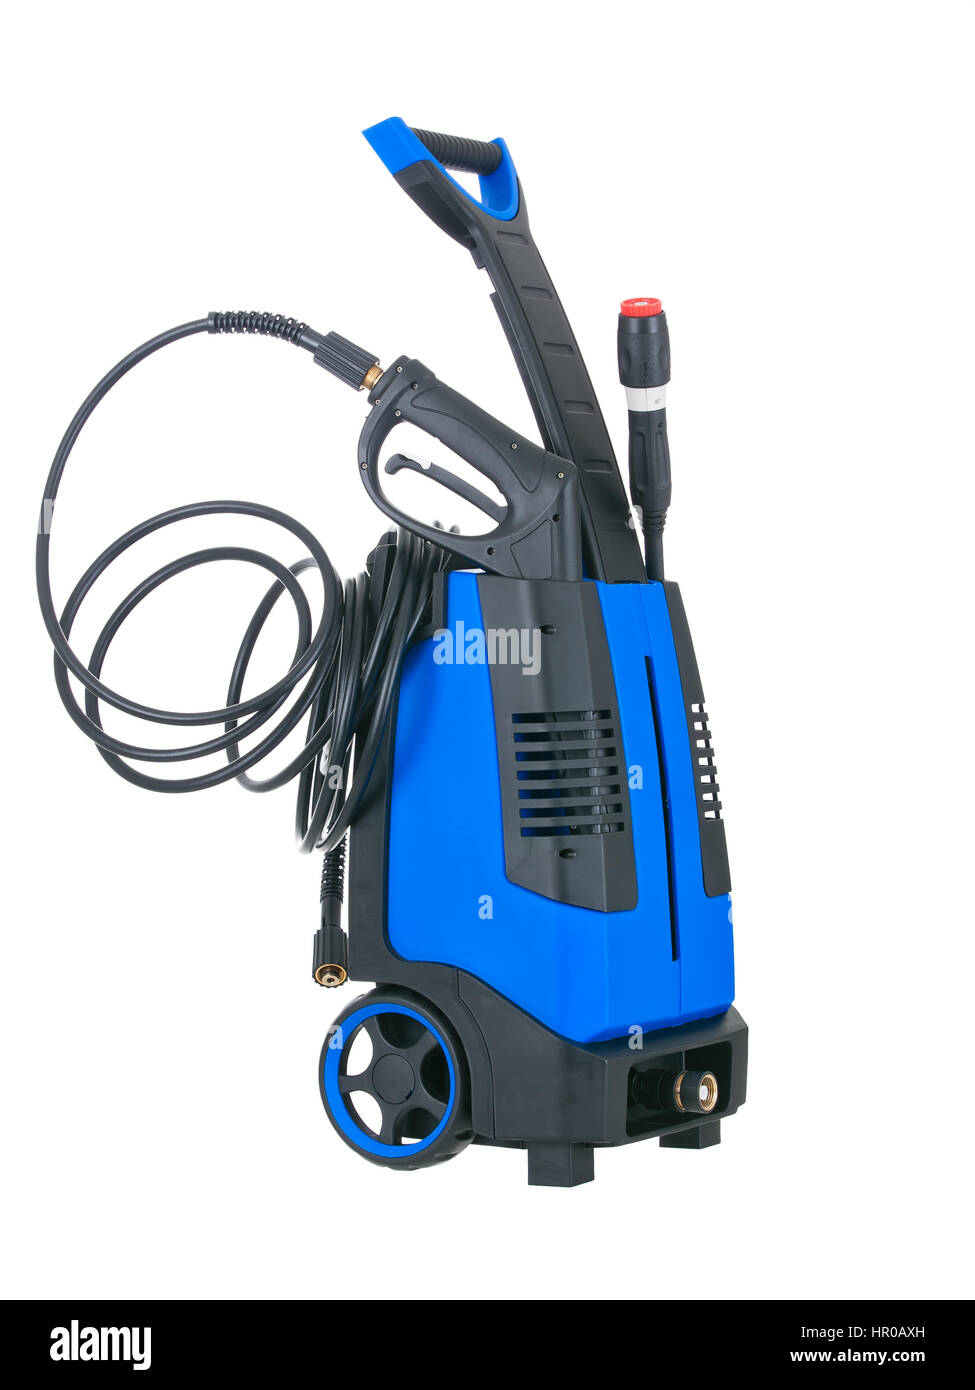 Blue pressure portable washer with inserted gun on pure white background - Stock Image